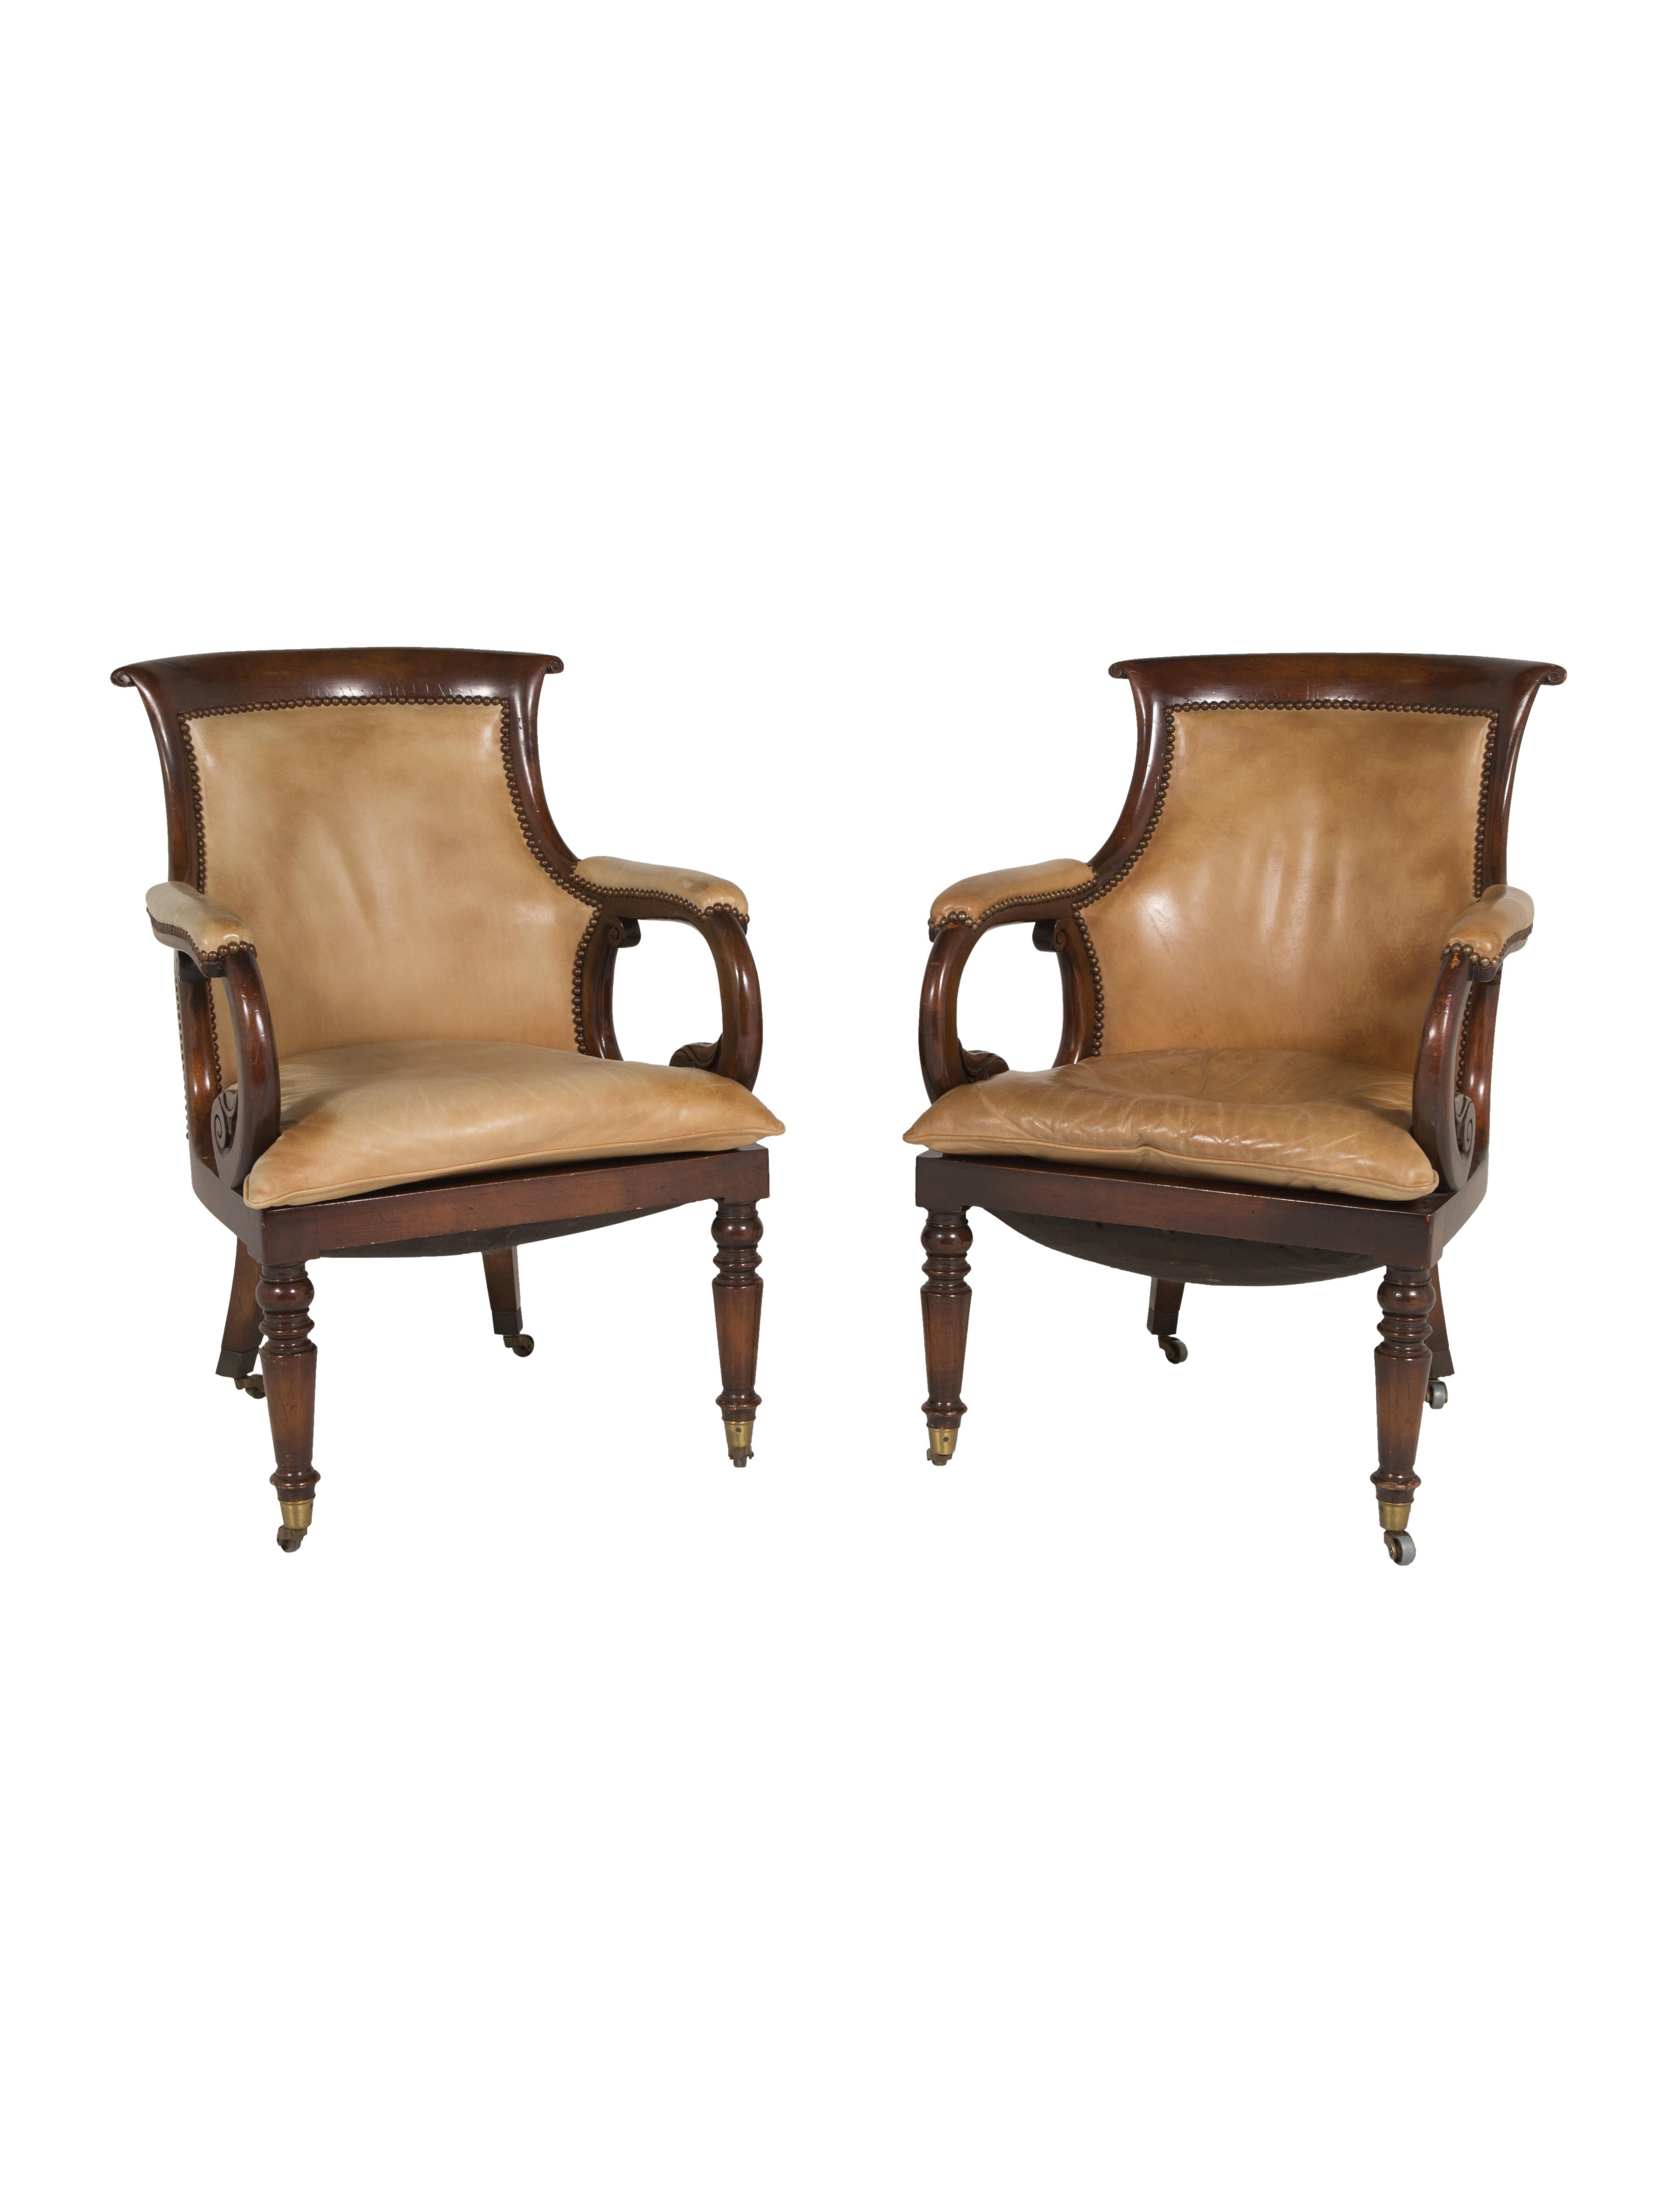 Pair Of 19th Century Regency Armchairs Furniture Furni20318 The Realreal